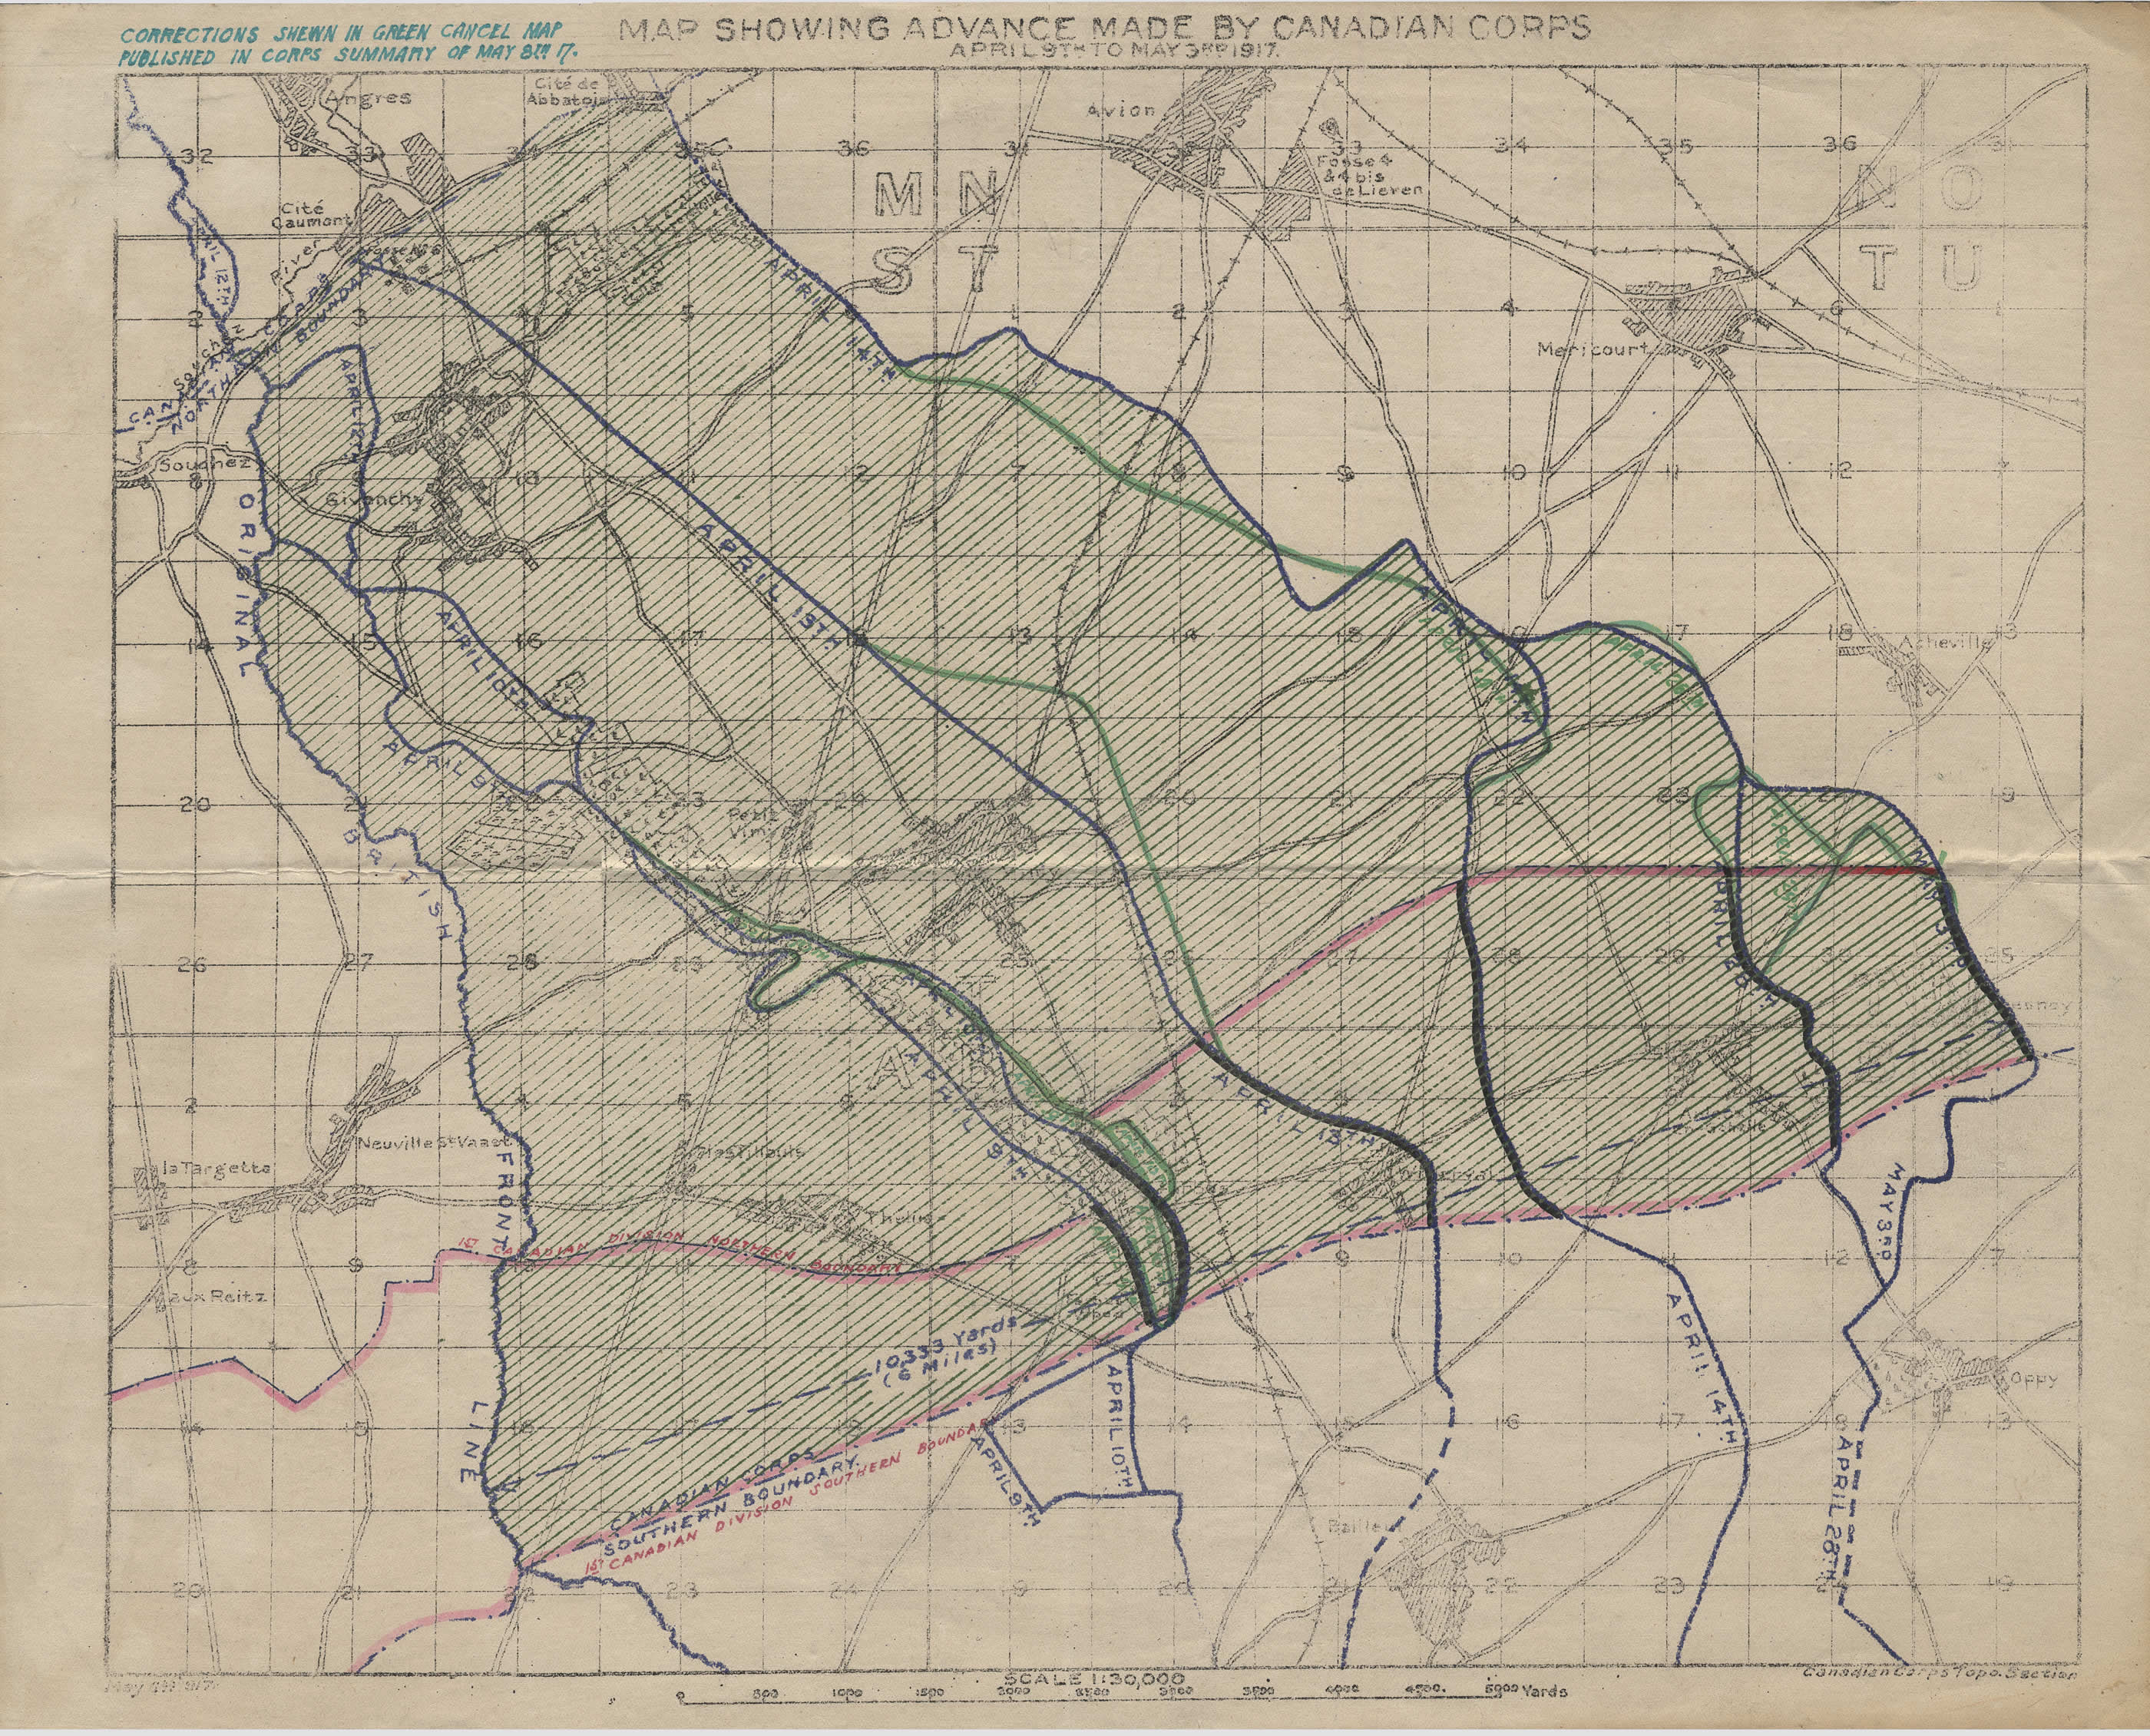 Map of Canadian Advance at Vimy